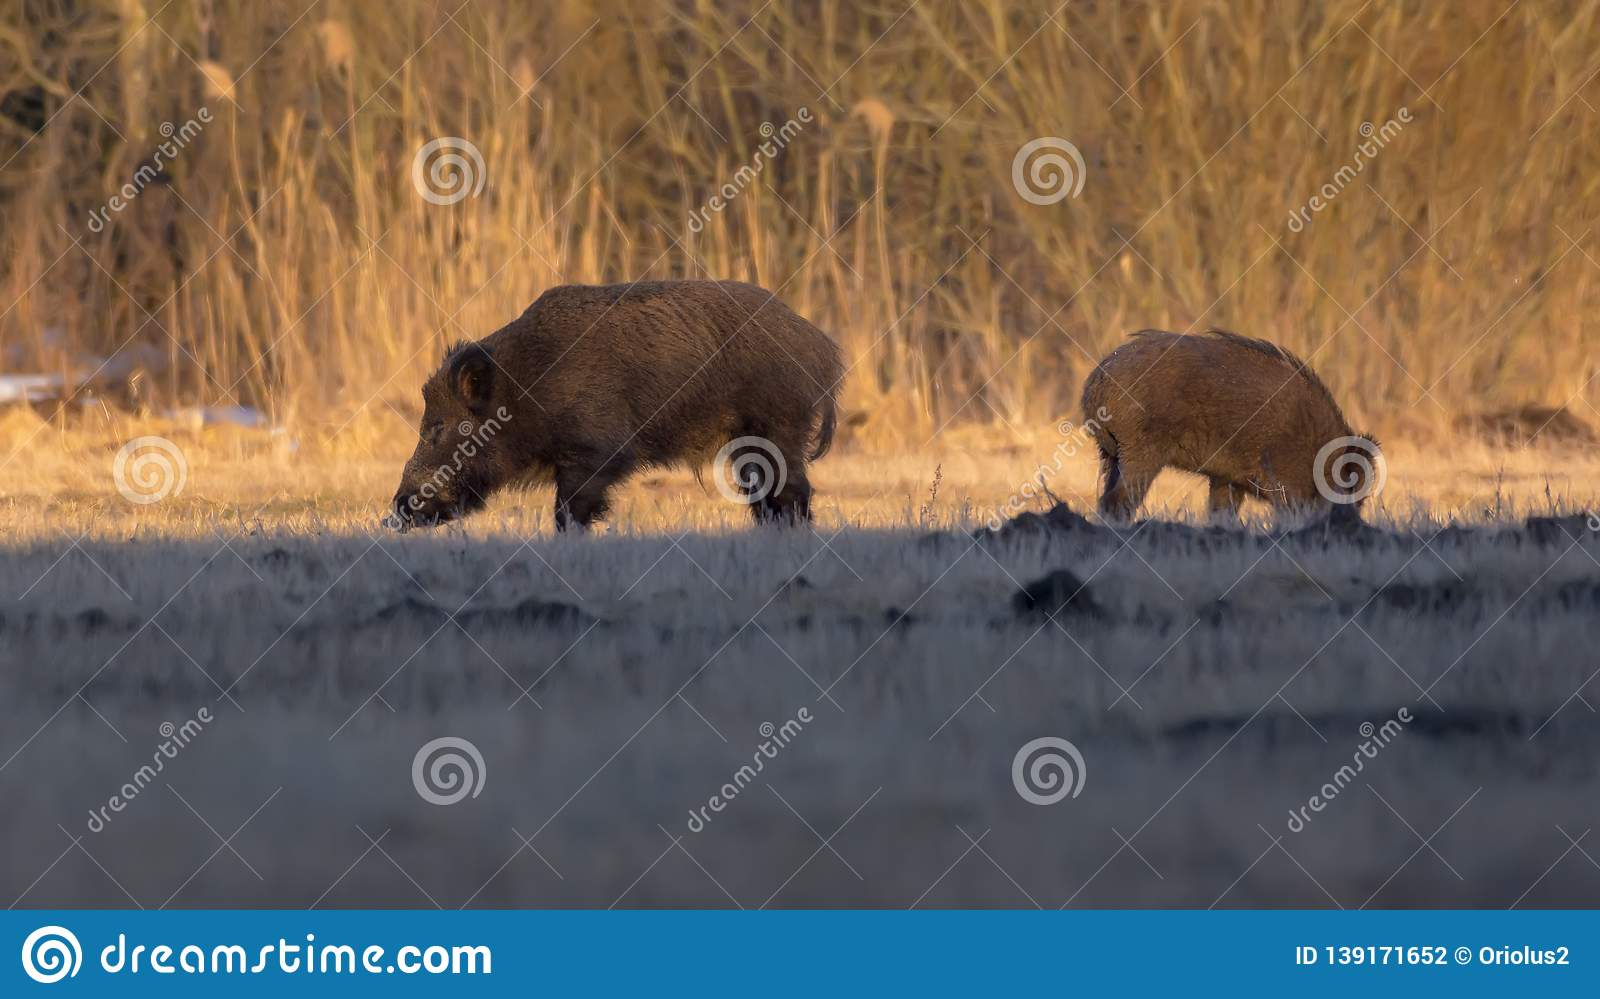 Pair of wild boars in search for food at underground field near the woods